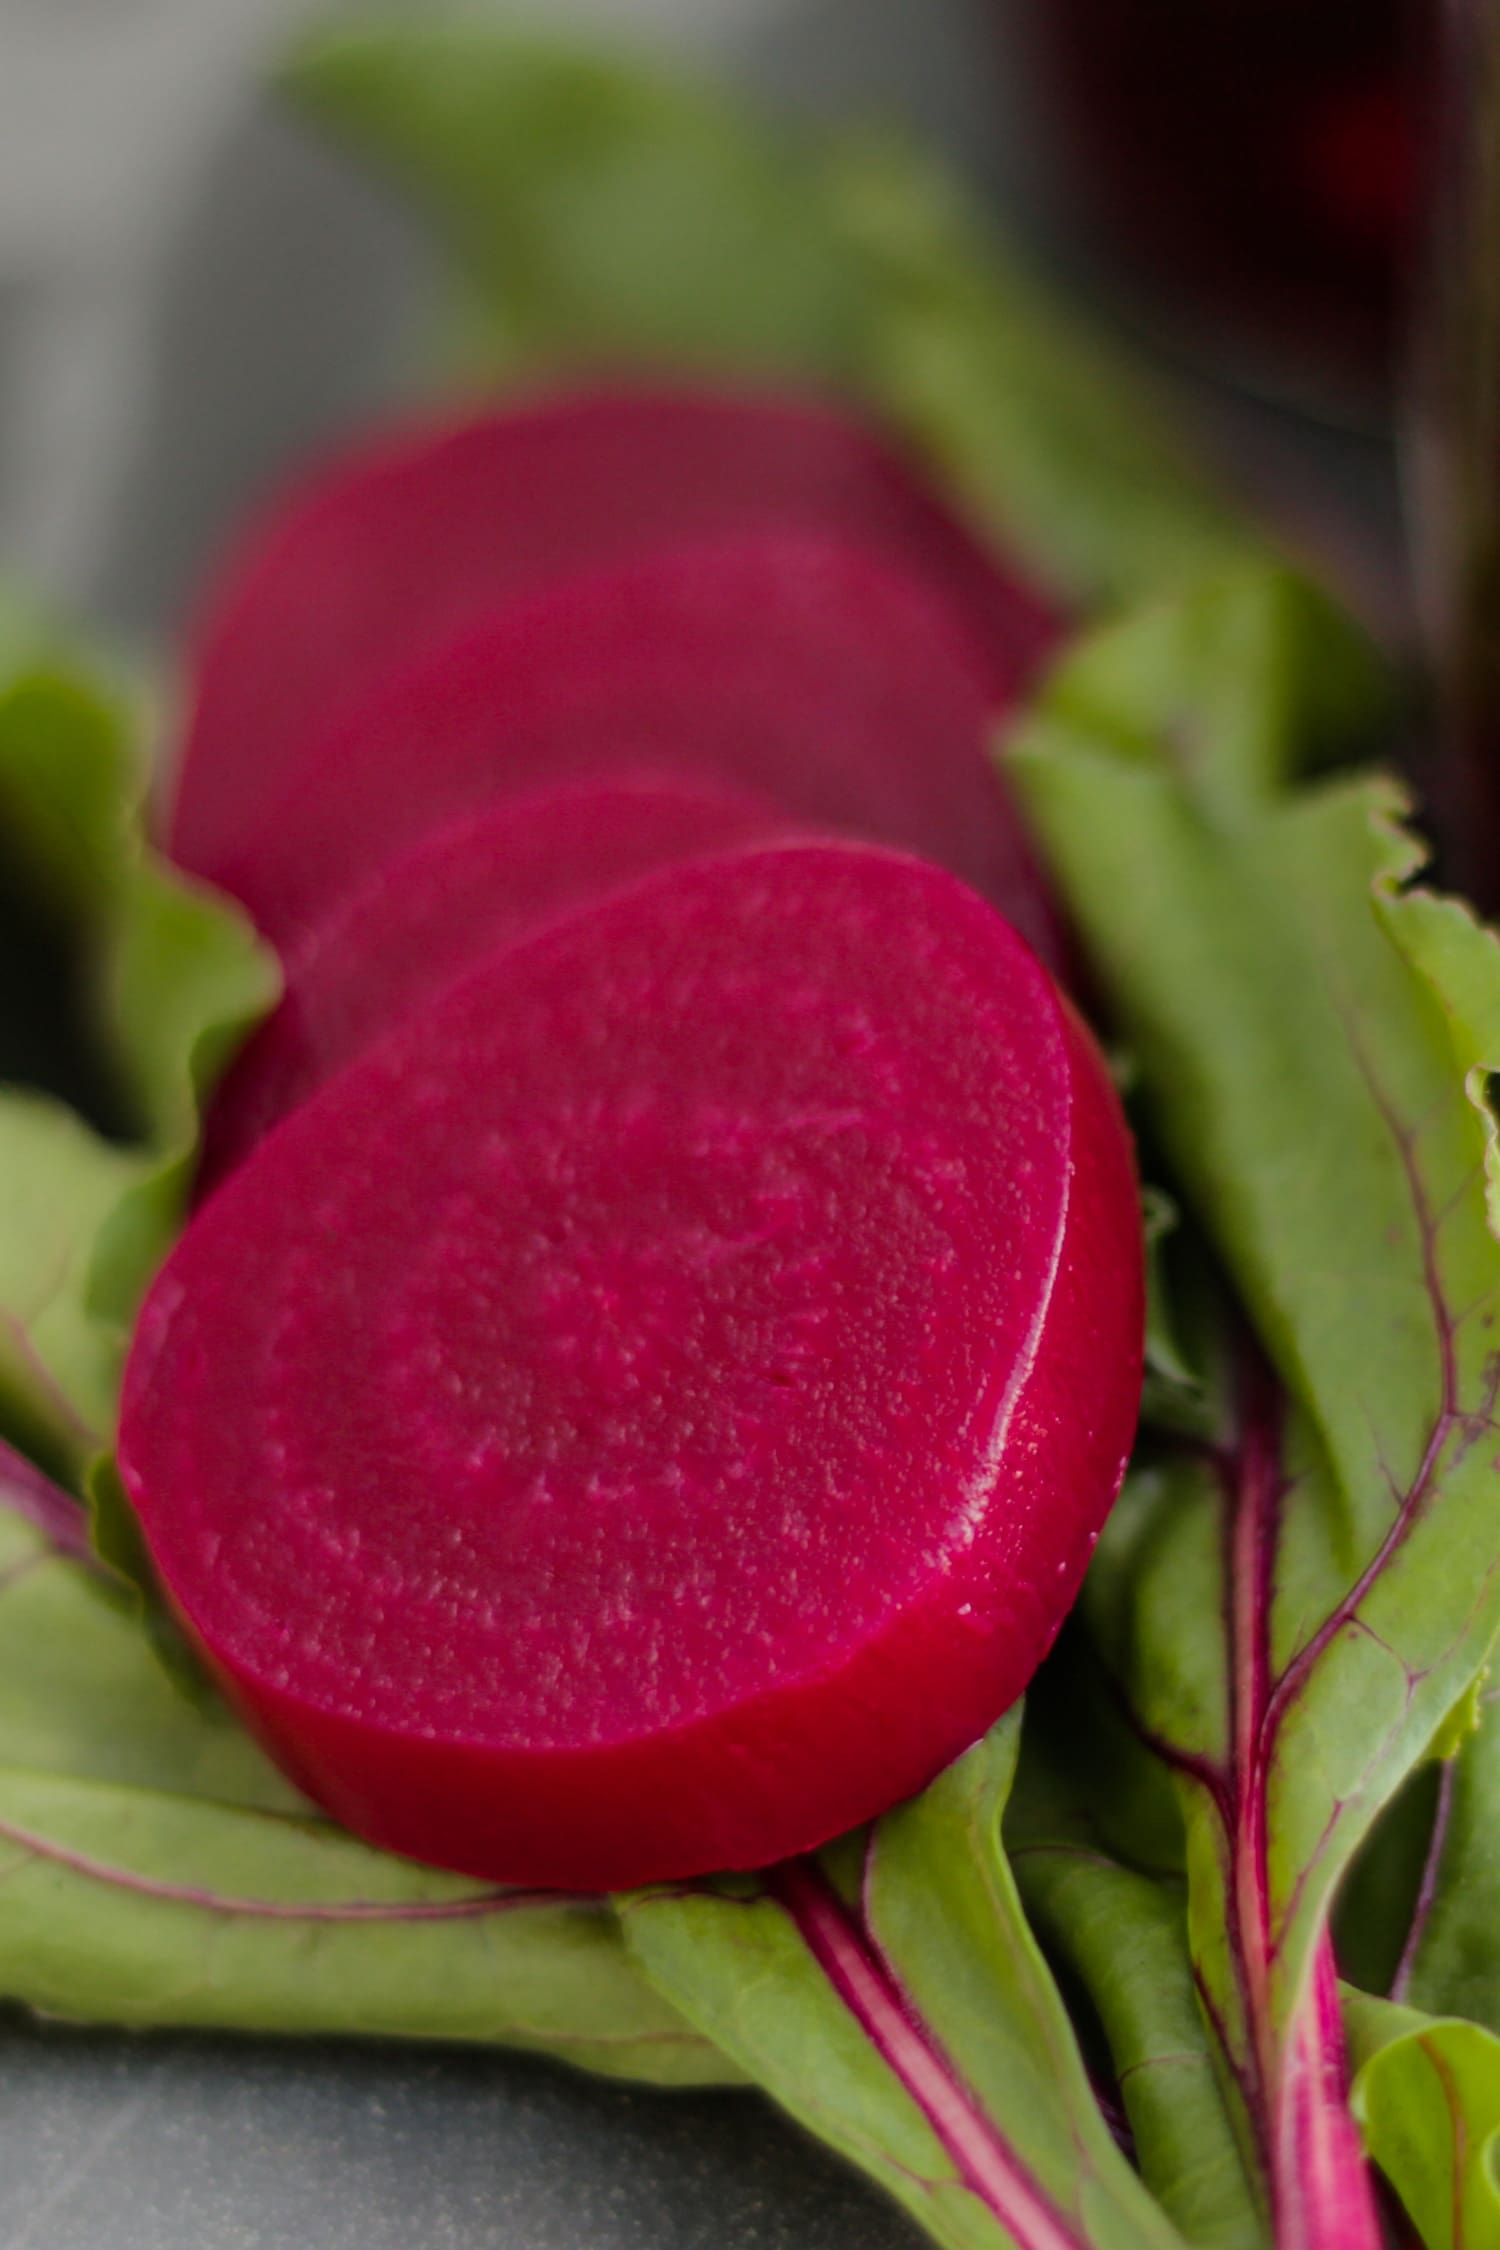 Close up view of slices of dark red pickled beets on a bed of beet leaves on a gray slate surface